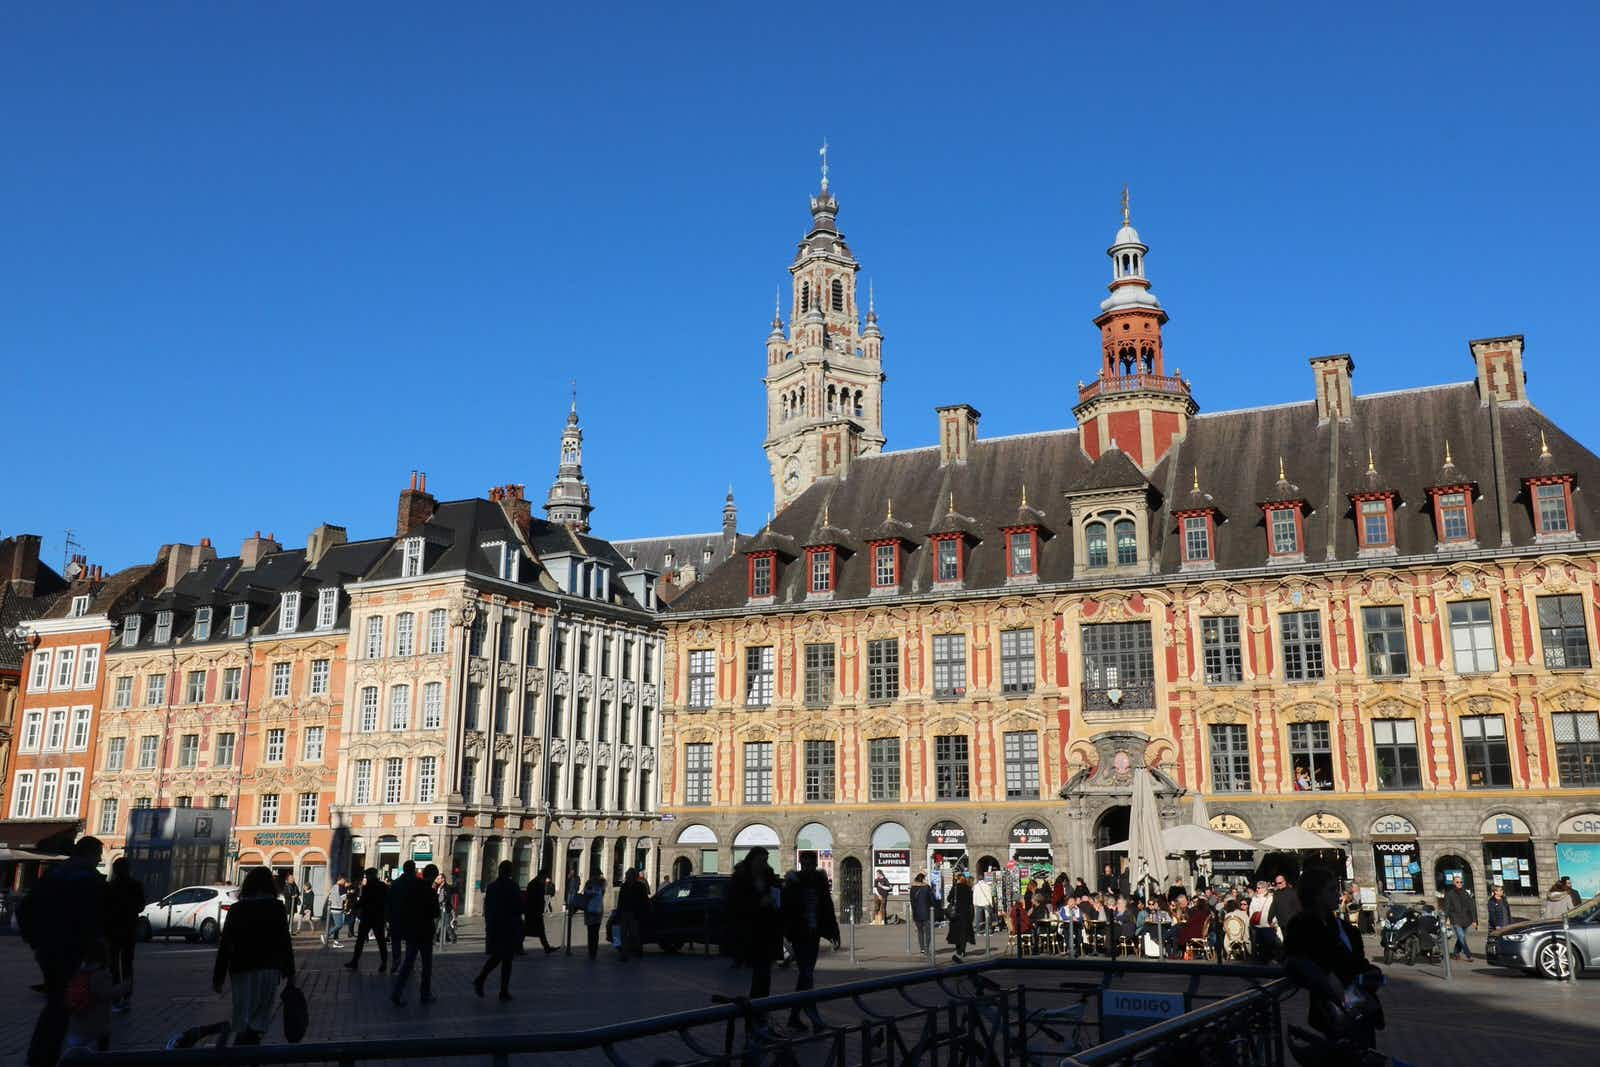 The rooftops in Lille © Meiqianbao / Shutterstock